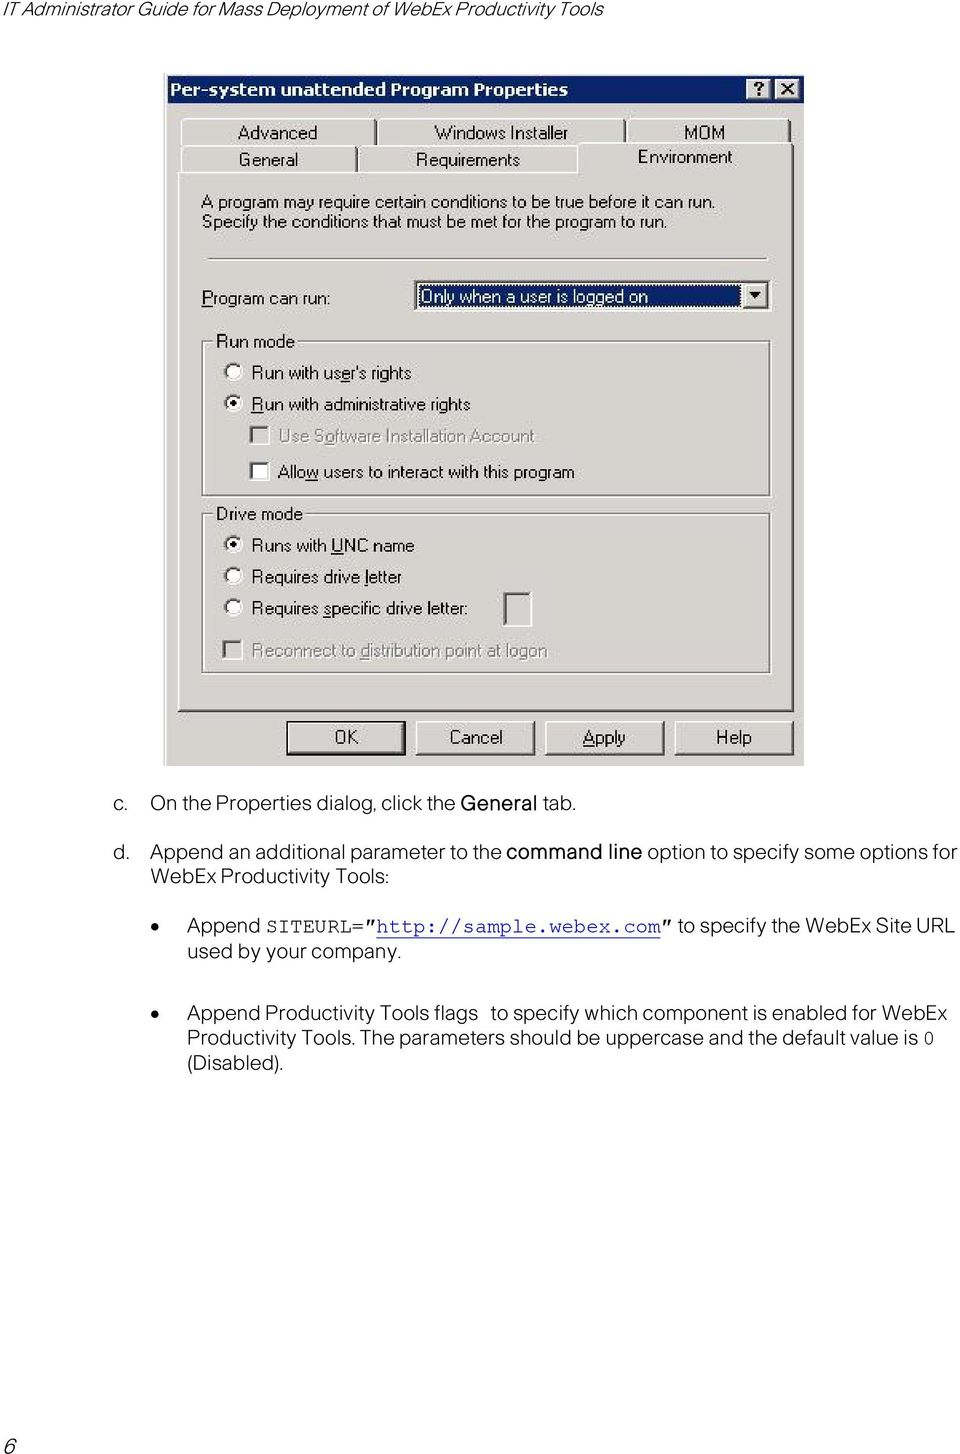 IT Administrator Guide for Mass Deployment of WebEx